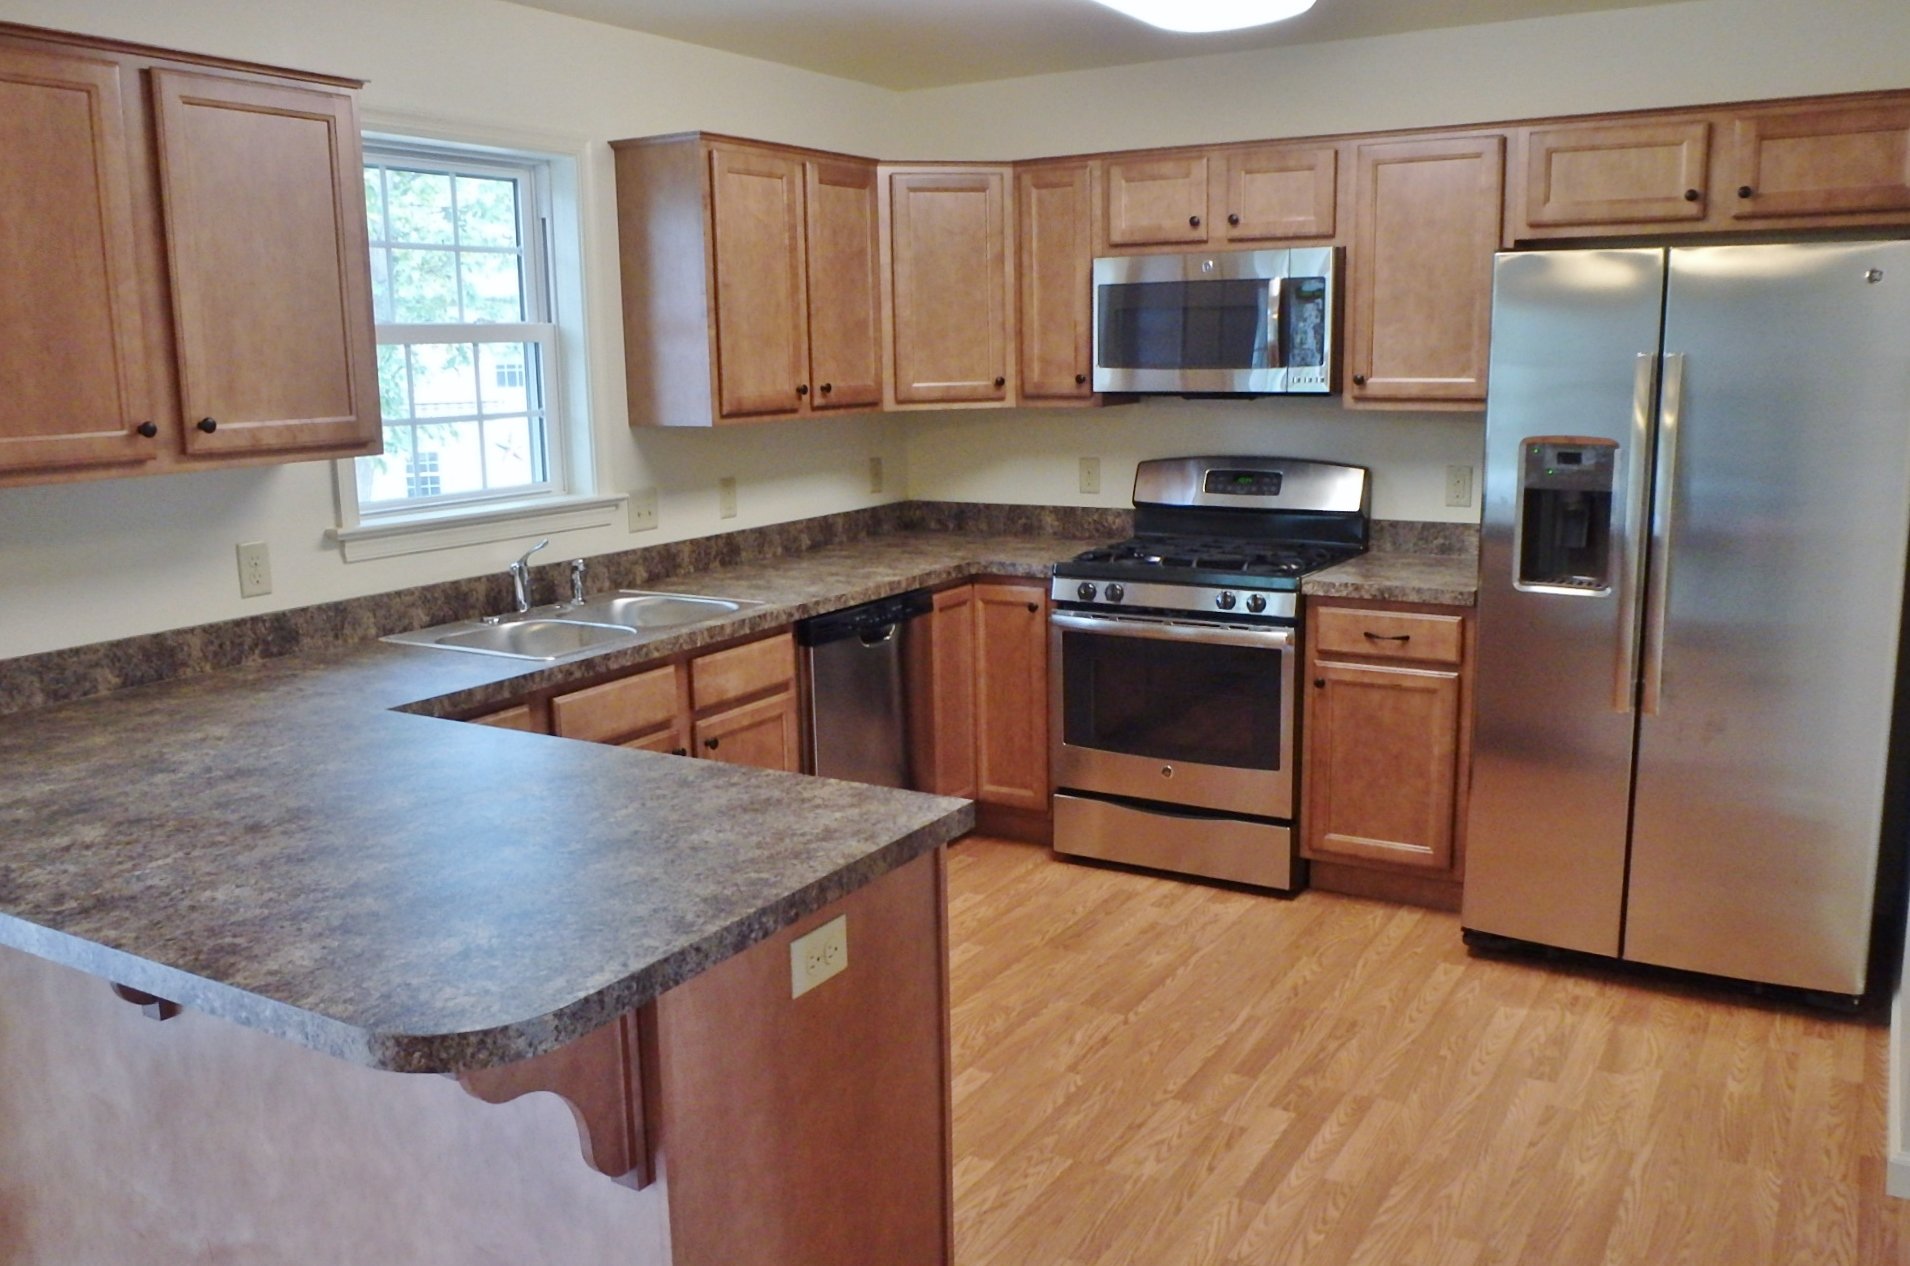 Kitchen photo at 164 McKivision Court in State College PA.